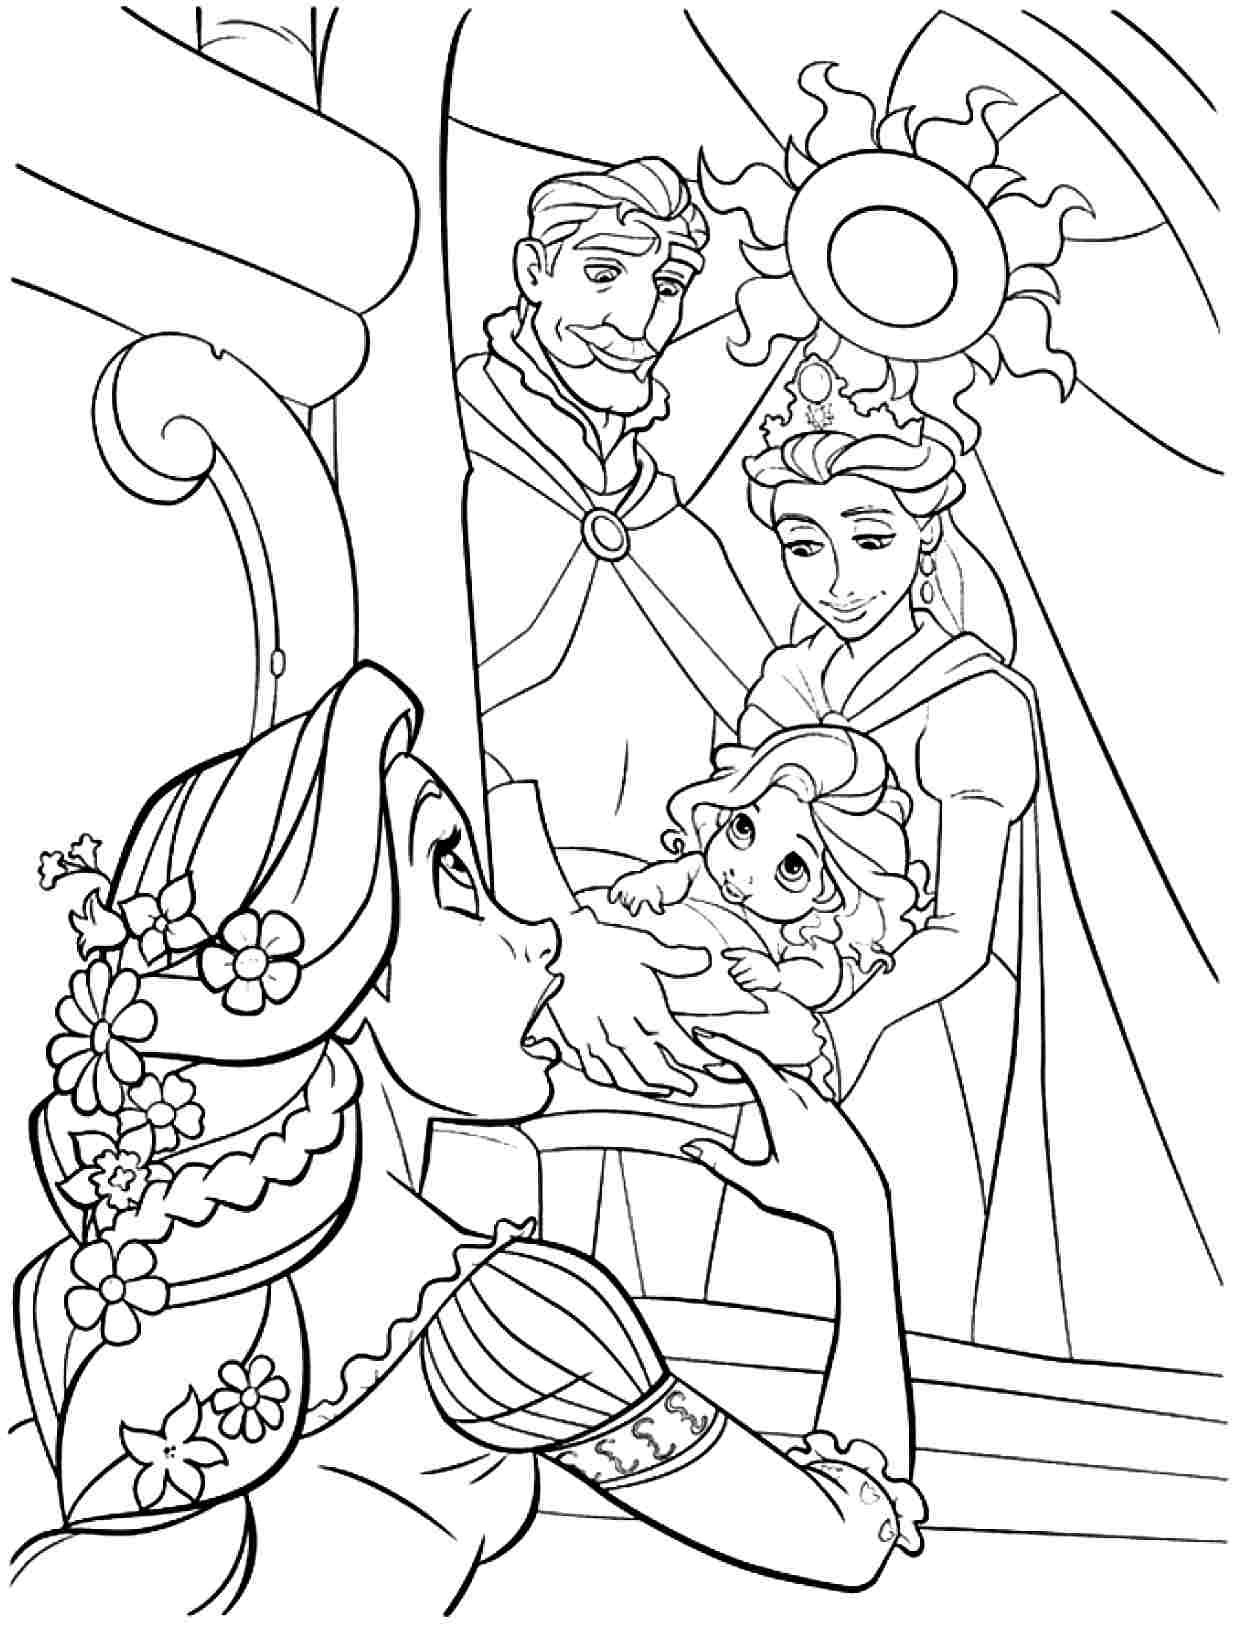 disney rapunzel pictures to color amazing hair of rapunzel coloring page kids play color disney color rapunzel pictures to